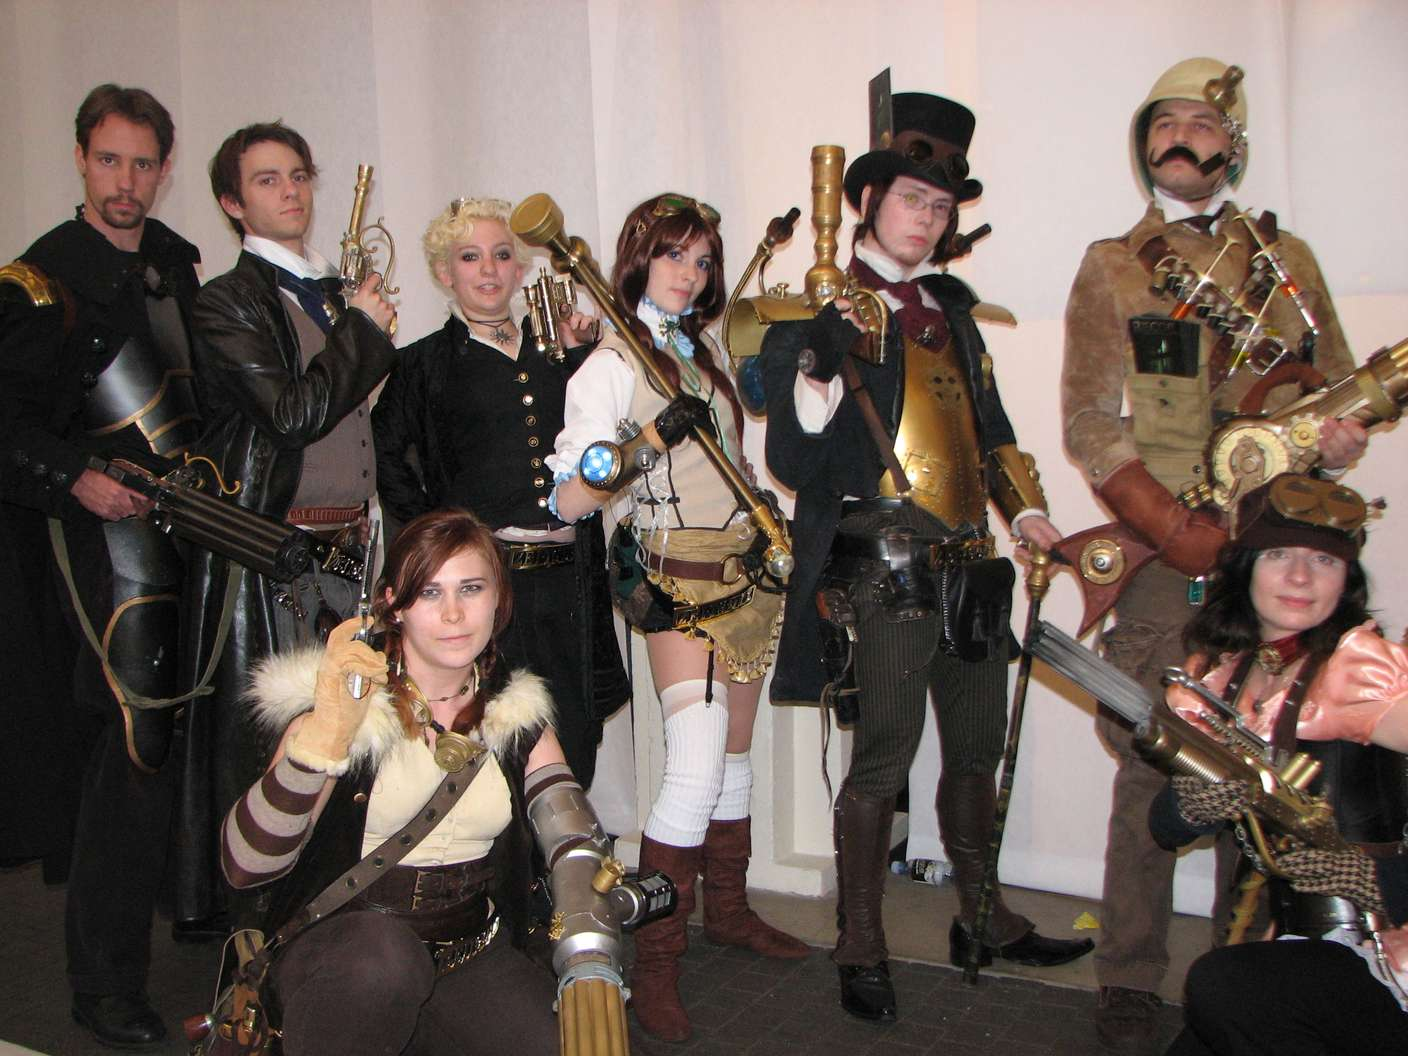 Group of steampunk people5